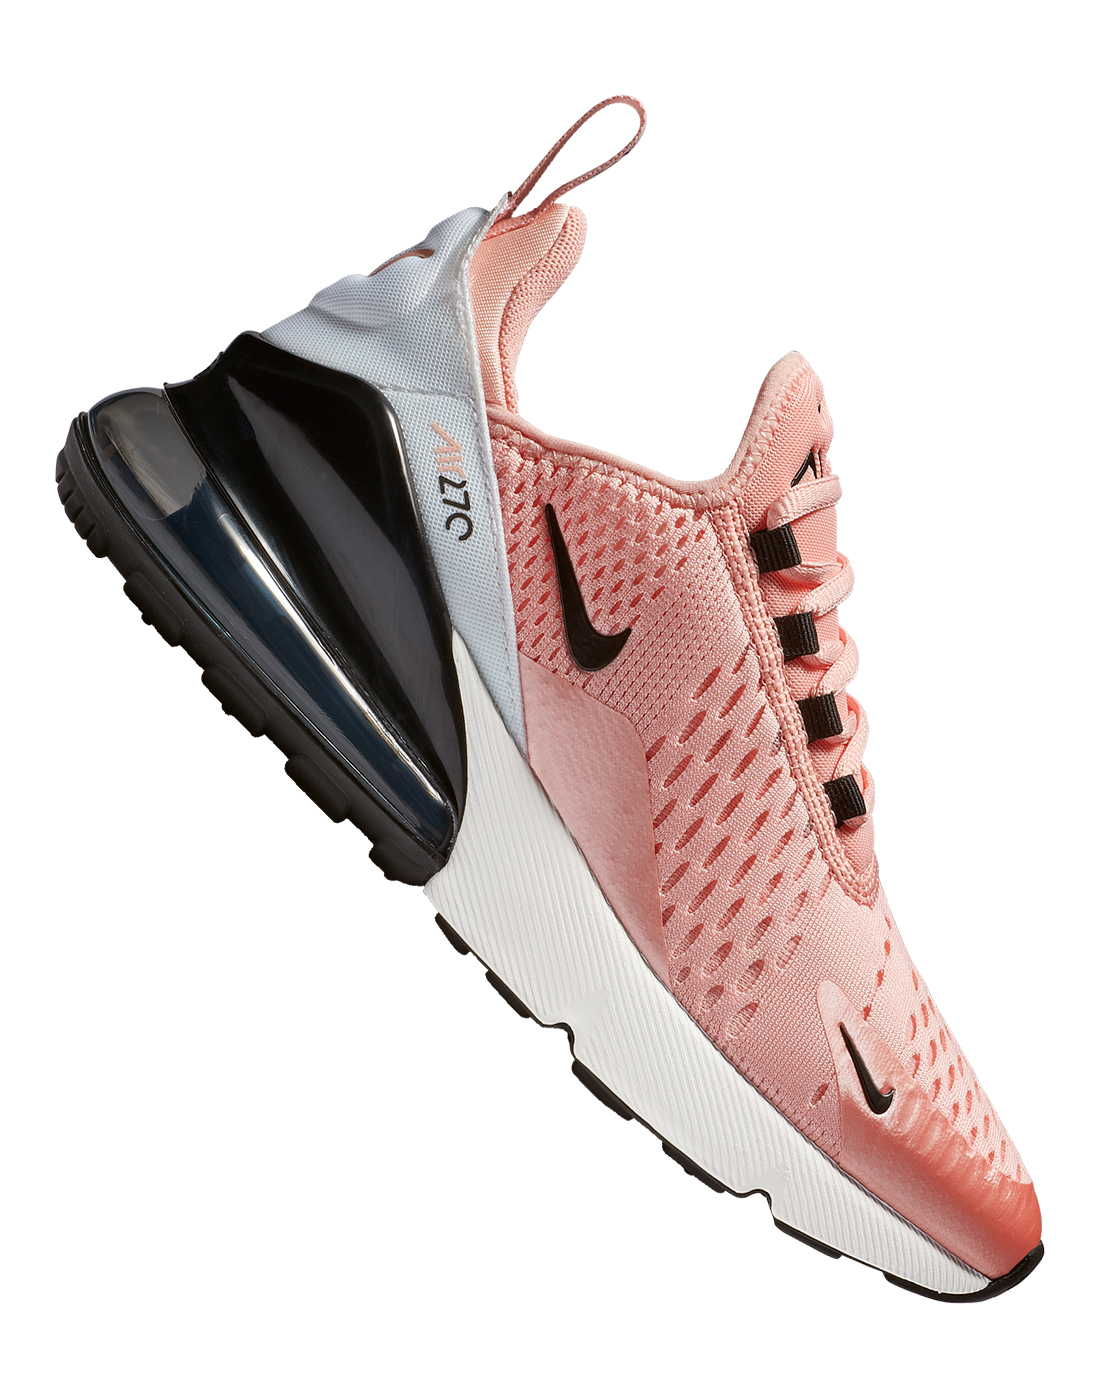 online retailer 7c952 ce61d Girl's Pink & Black Nike Air Max 270 | Life Style Sports